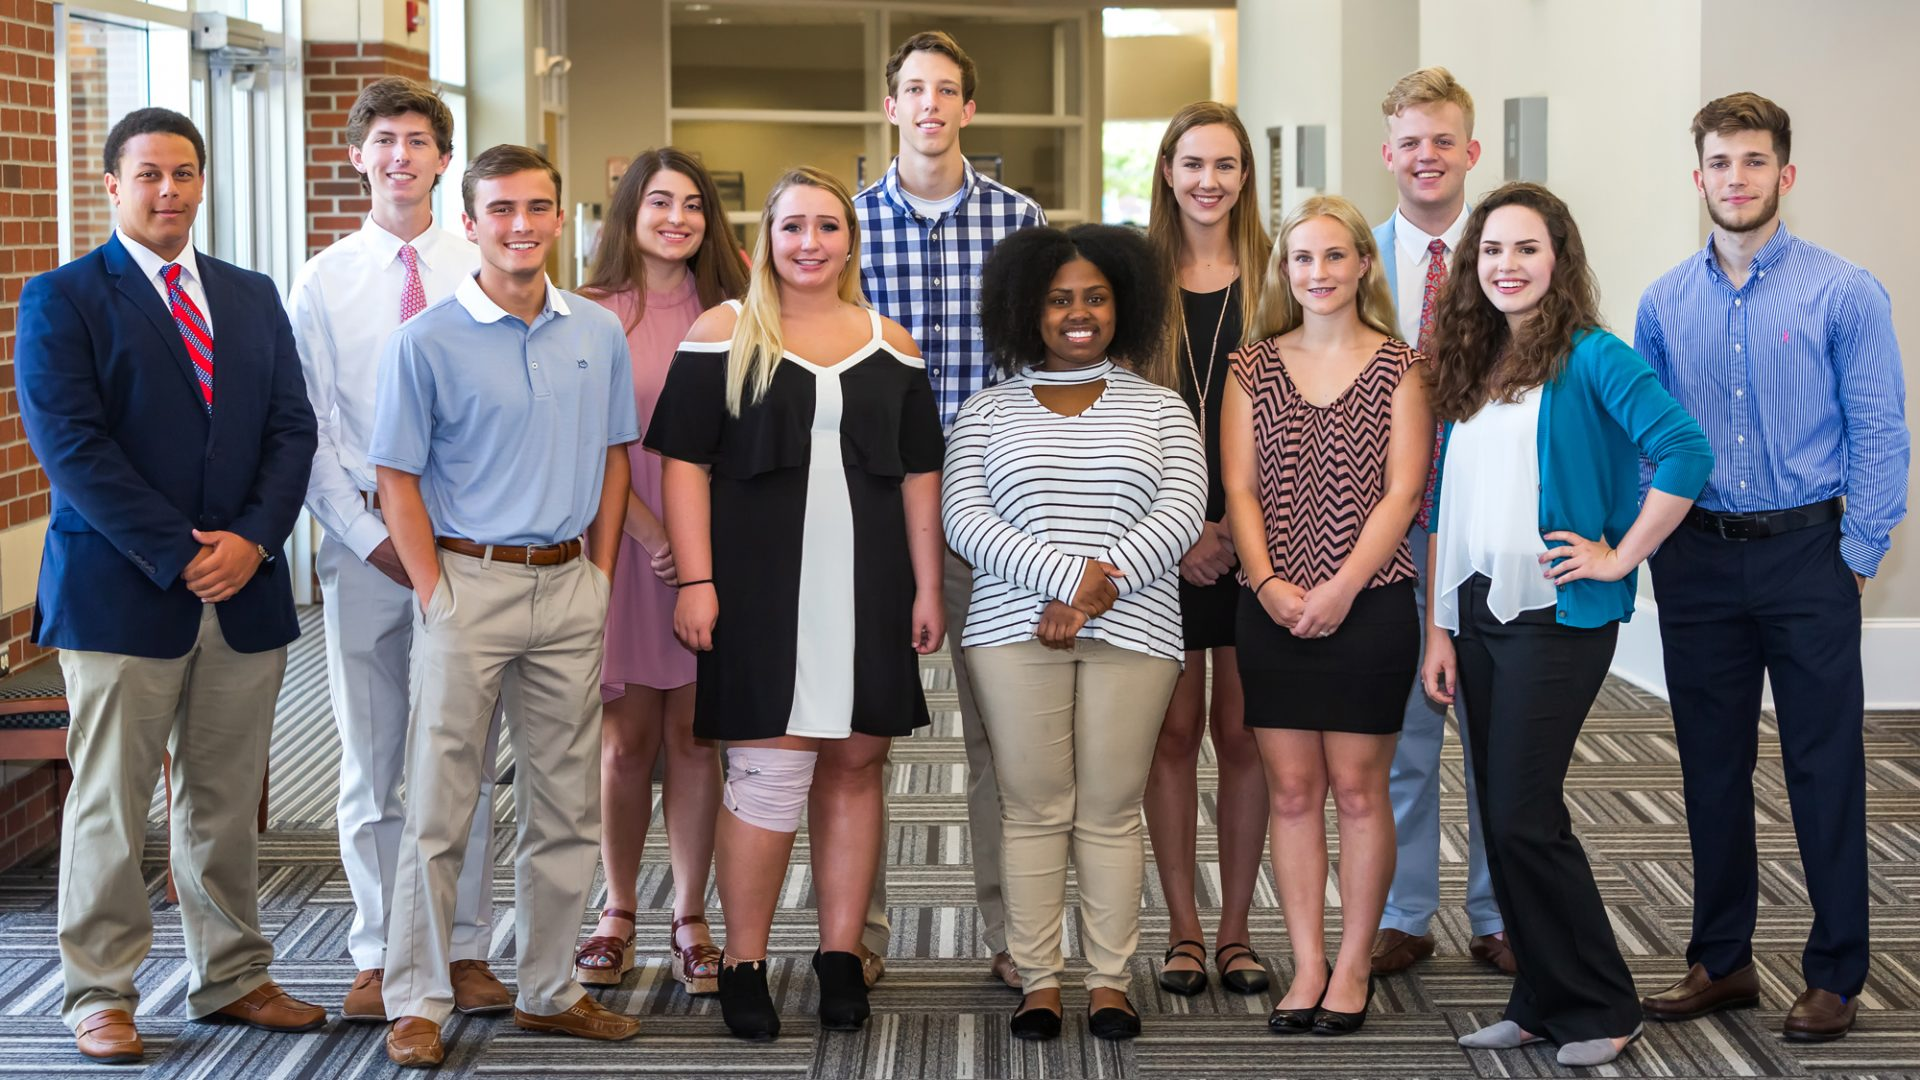 PCC's 2018-19 Student Ambassadors met in the Goess Student Center this month to begin preparing for their responsibilities during the upcoming academic year. From left to right, they are: Titus Williams, Hayden Anderson, Owen Simpkins, Abigail Perrini, Mary-Jean Weathers, Jameson Fisher, Andrea Smith, Madison Jones, Alexandra Woolard, Joshua Dees, Allie Moore and Geromy Wright.